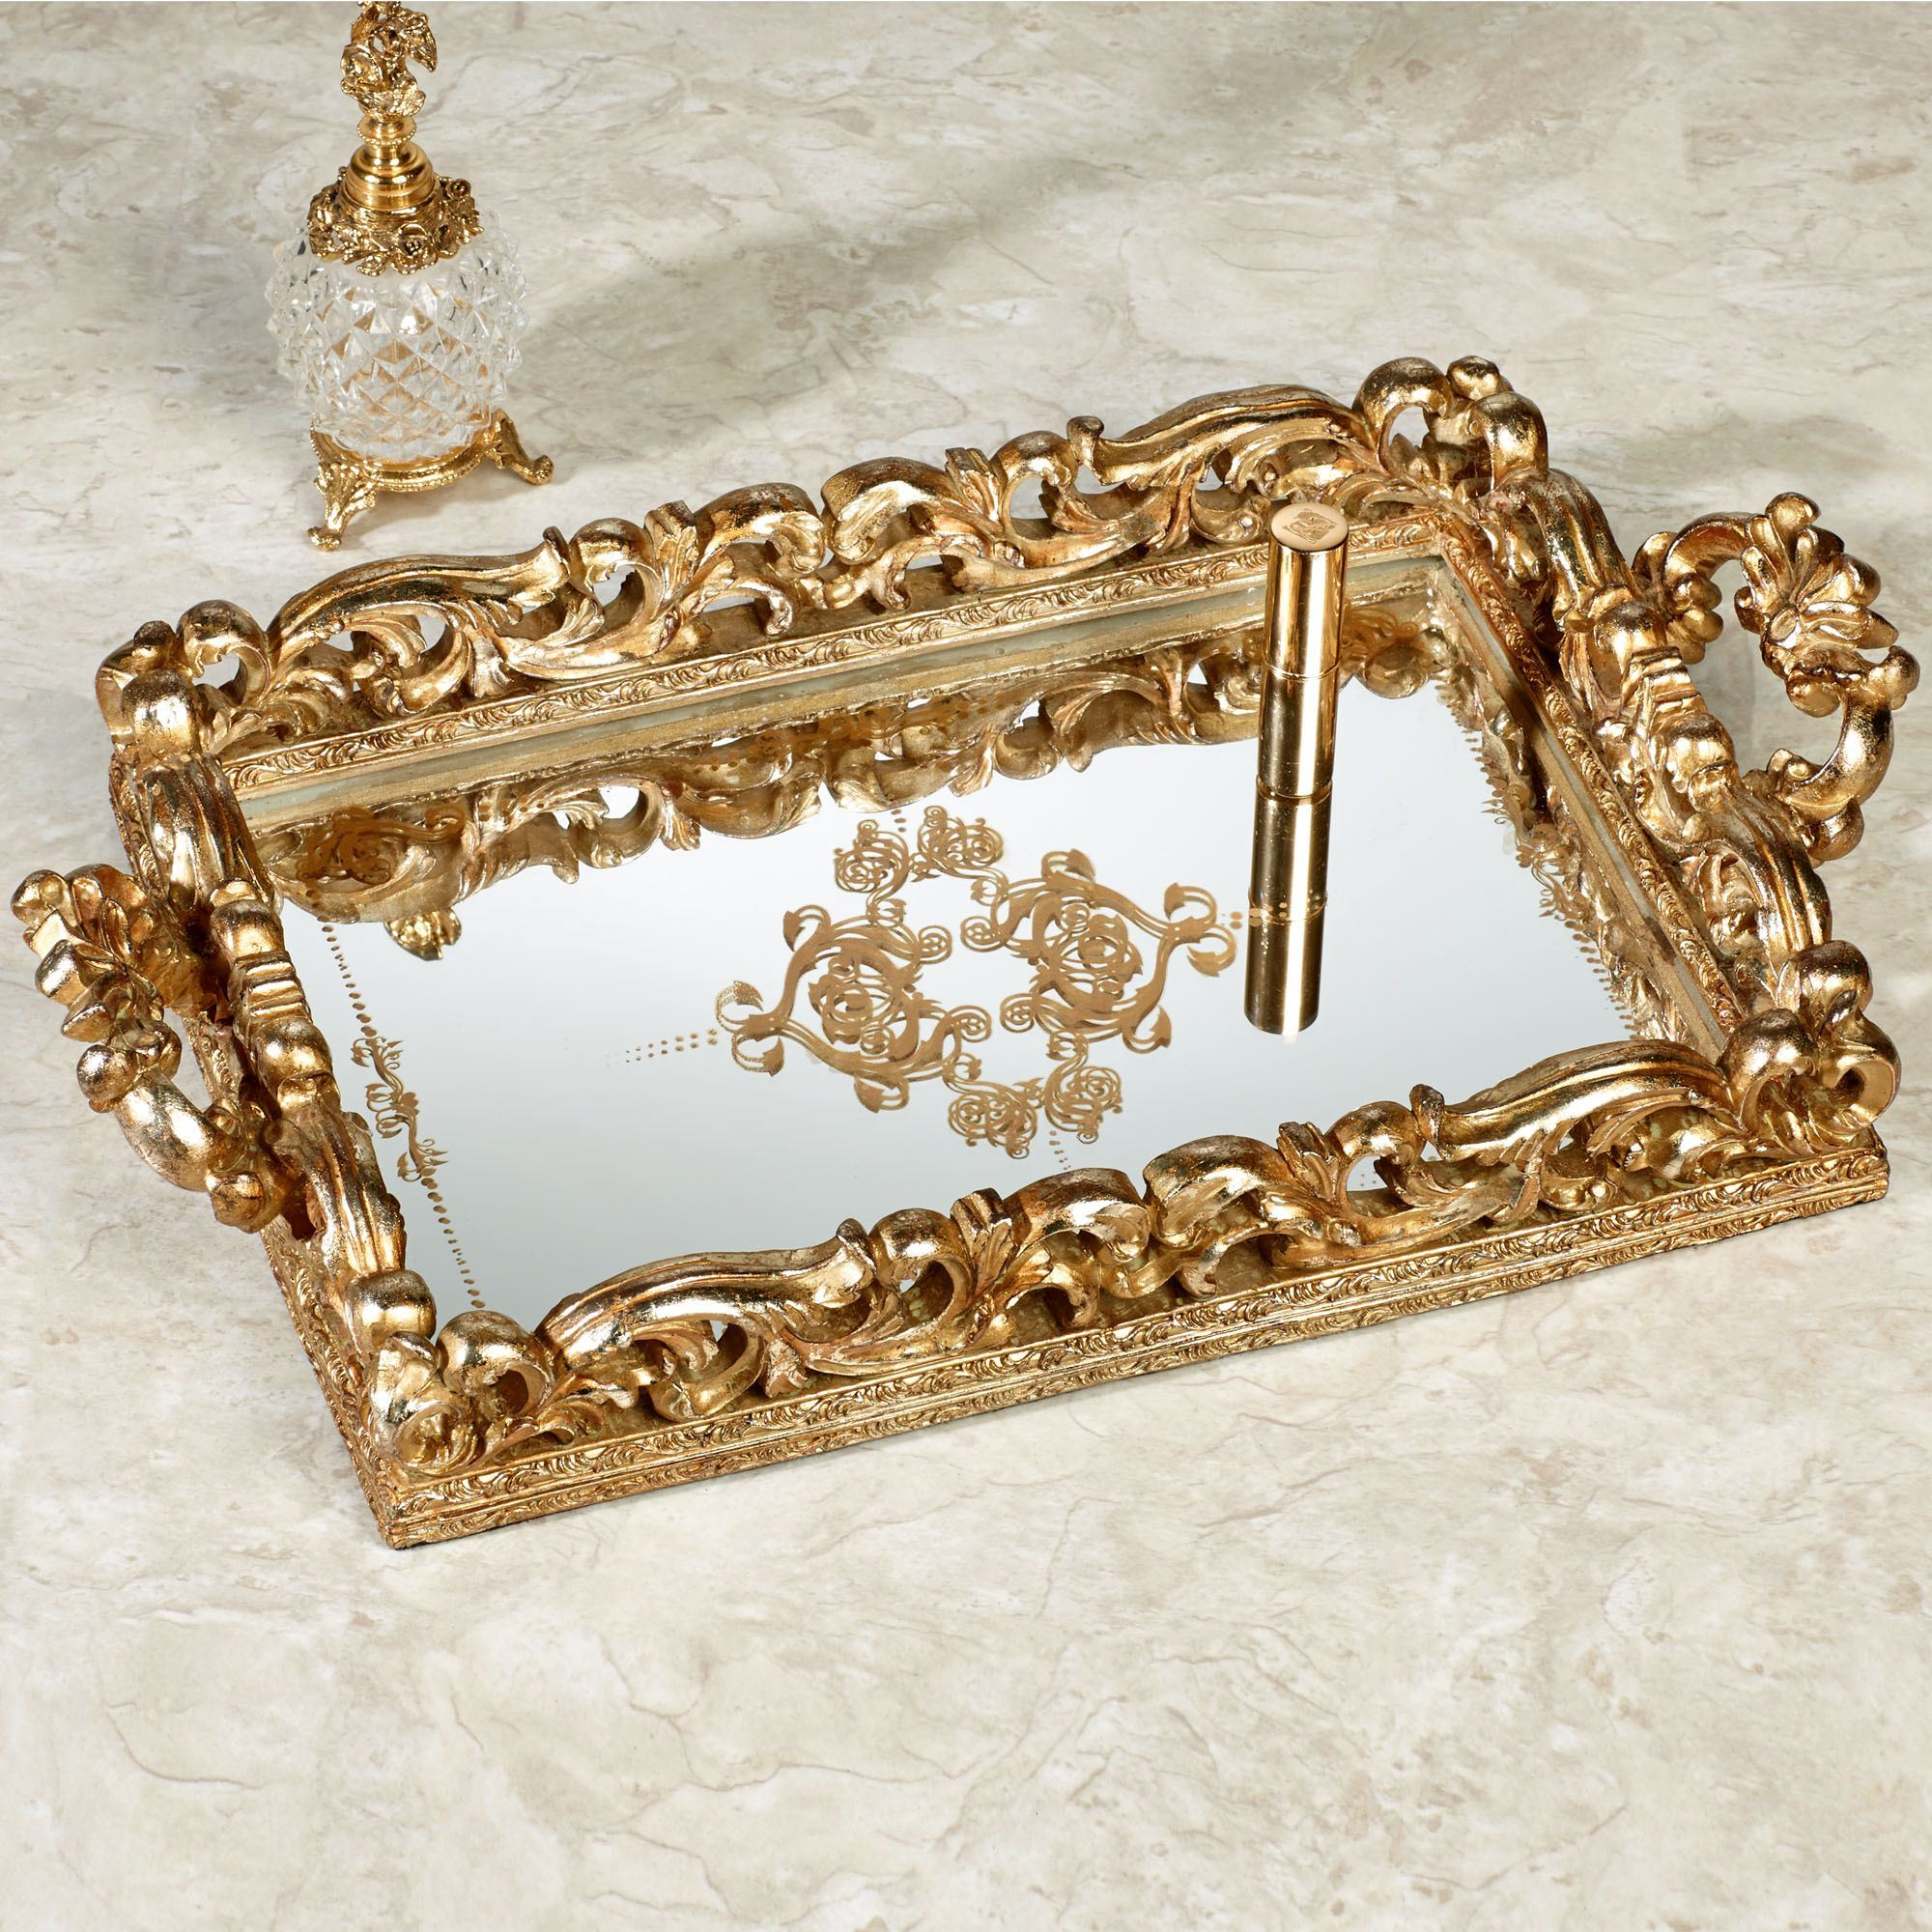 Beautiful Shines Mirrored Vanity Tray for Home Accesories Ideas: Golden Mirrored Vanity Tray Alluring Mirrored Vanity Tray Admirable Mirrored Vanity Tray